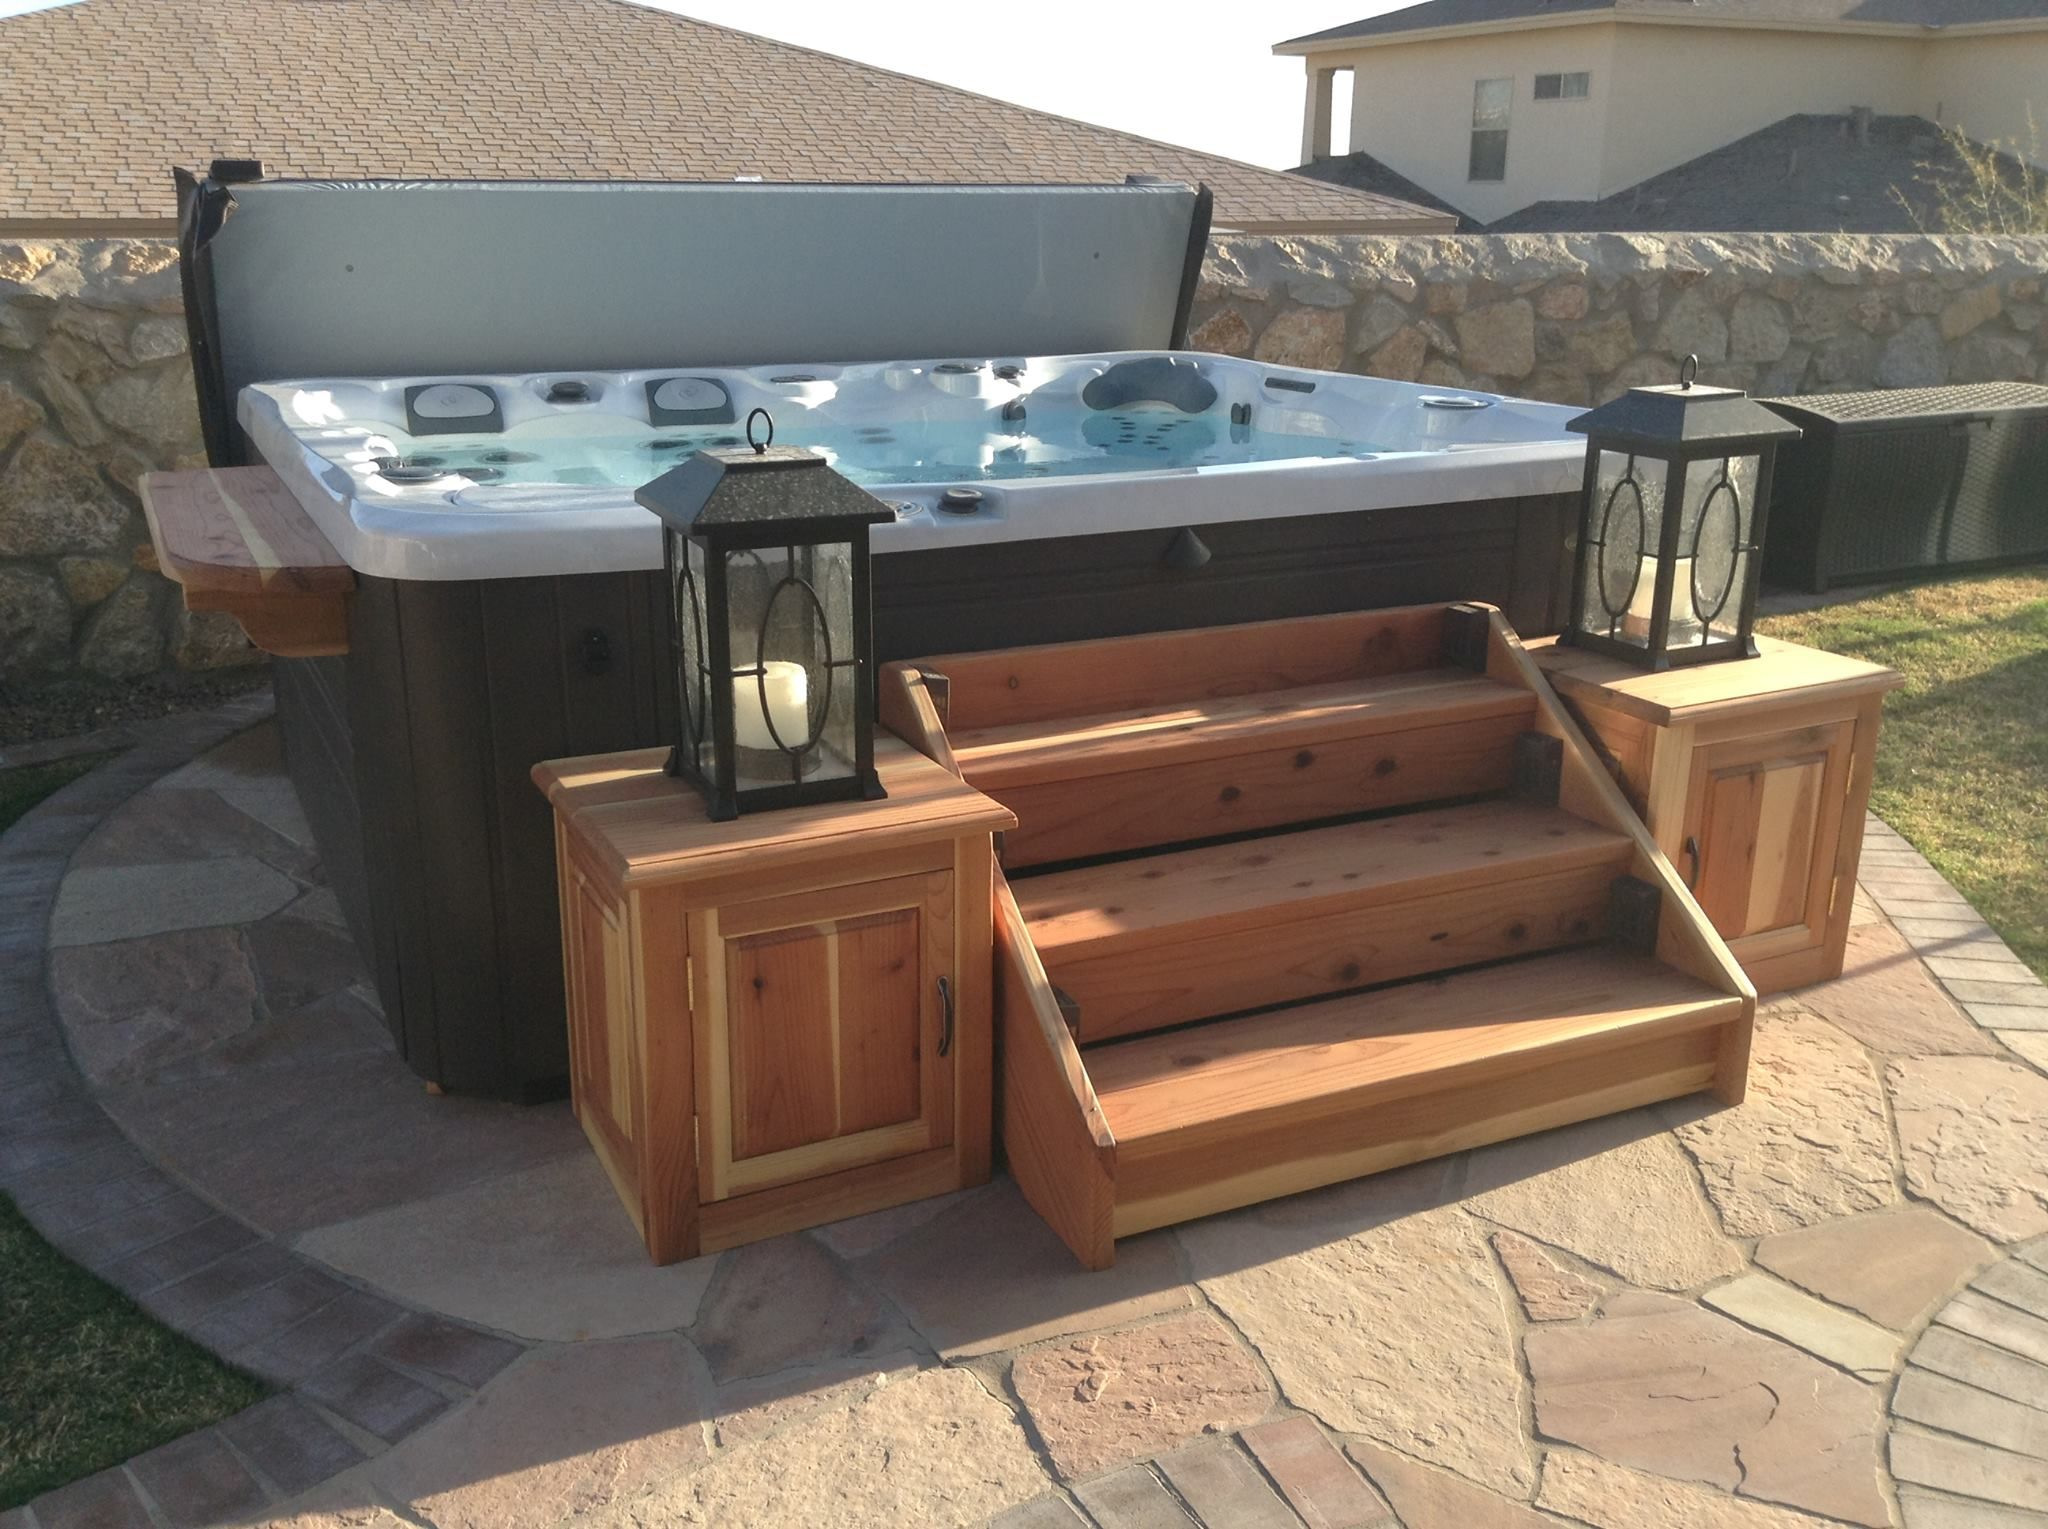 Cedar Wood Hot Tub Stairs & Side Cabinets by Andy | Projects ...